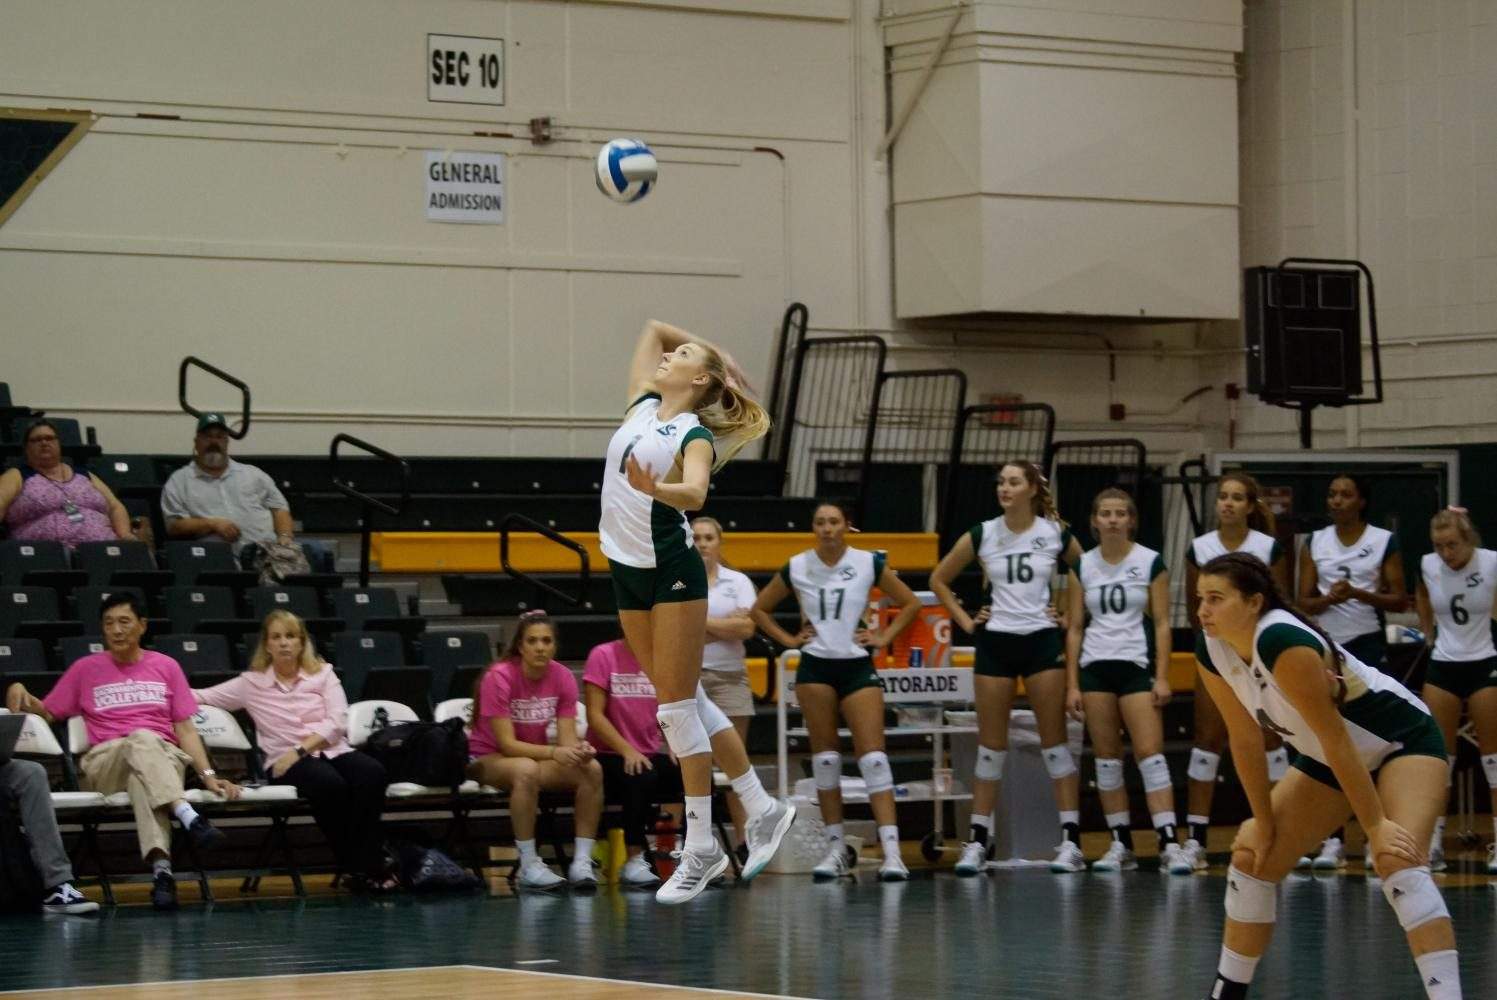 Sacramento+State+senior+setter+Kennedy+Kurtz+serves+the+ball+against+the+University+of+San+Francisco+Sept.+12+at+Colberg+Court.+Sac+State+defeated+San+Francisco+in+four+sets%2C+3-1.+++